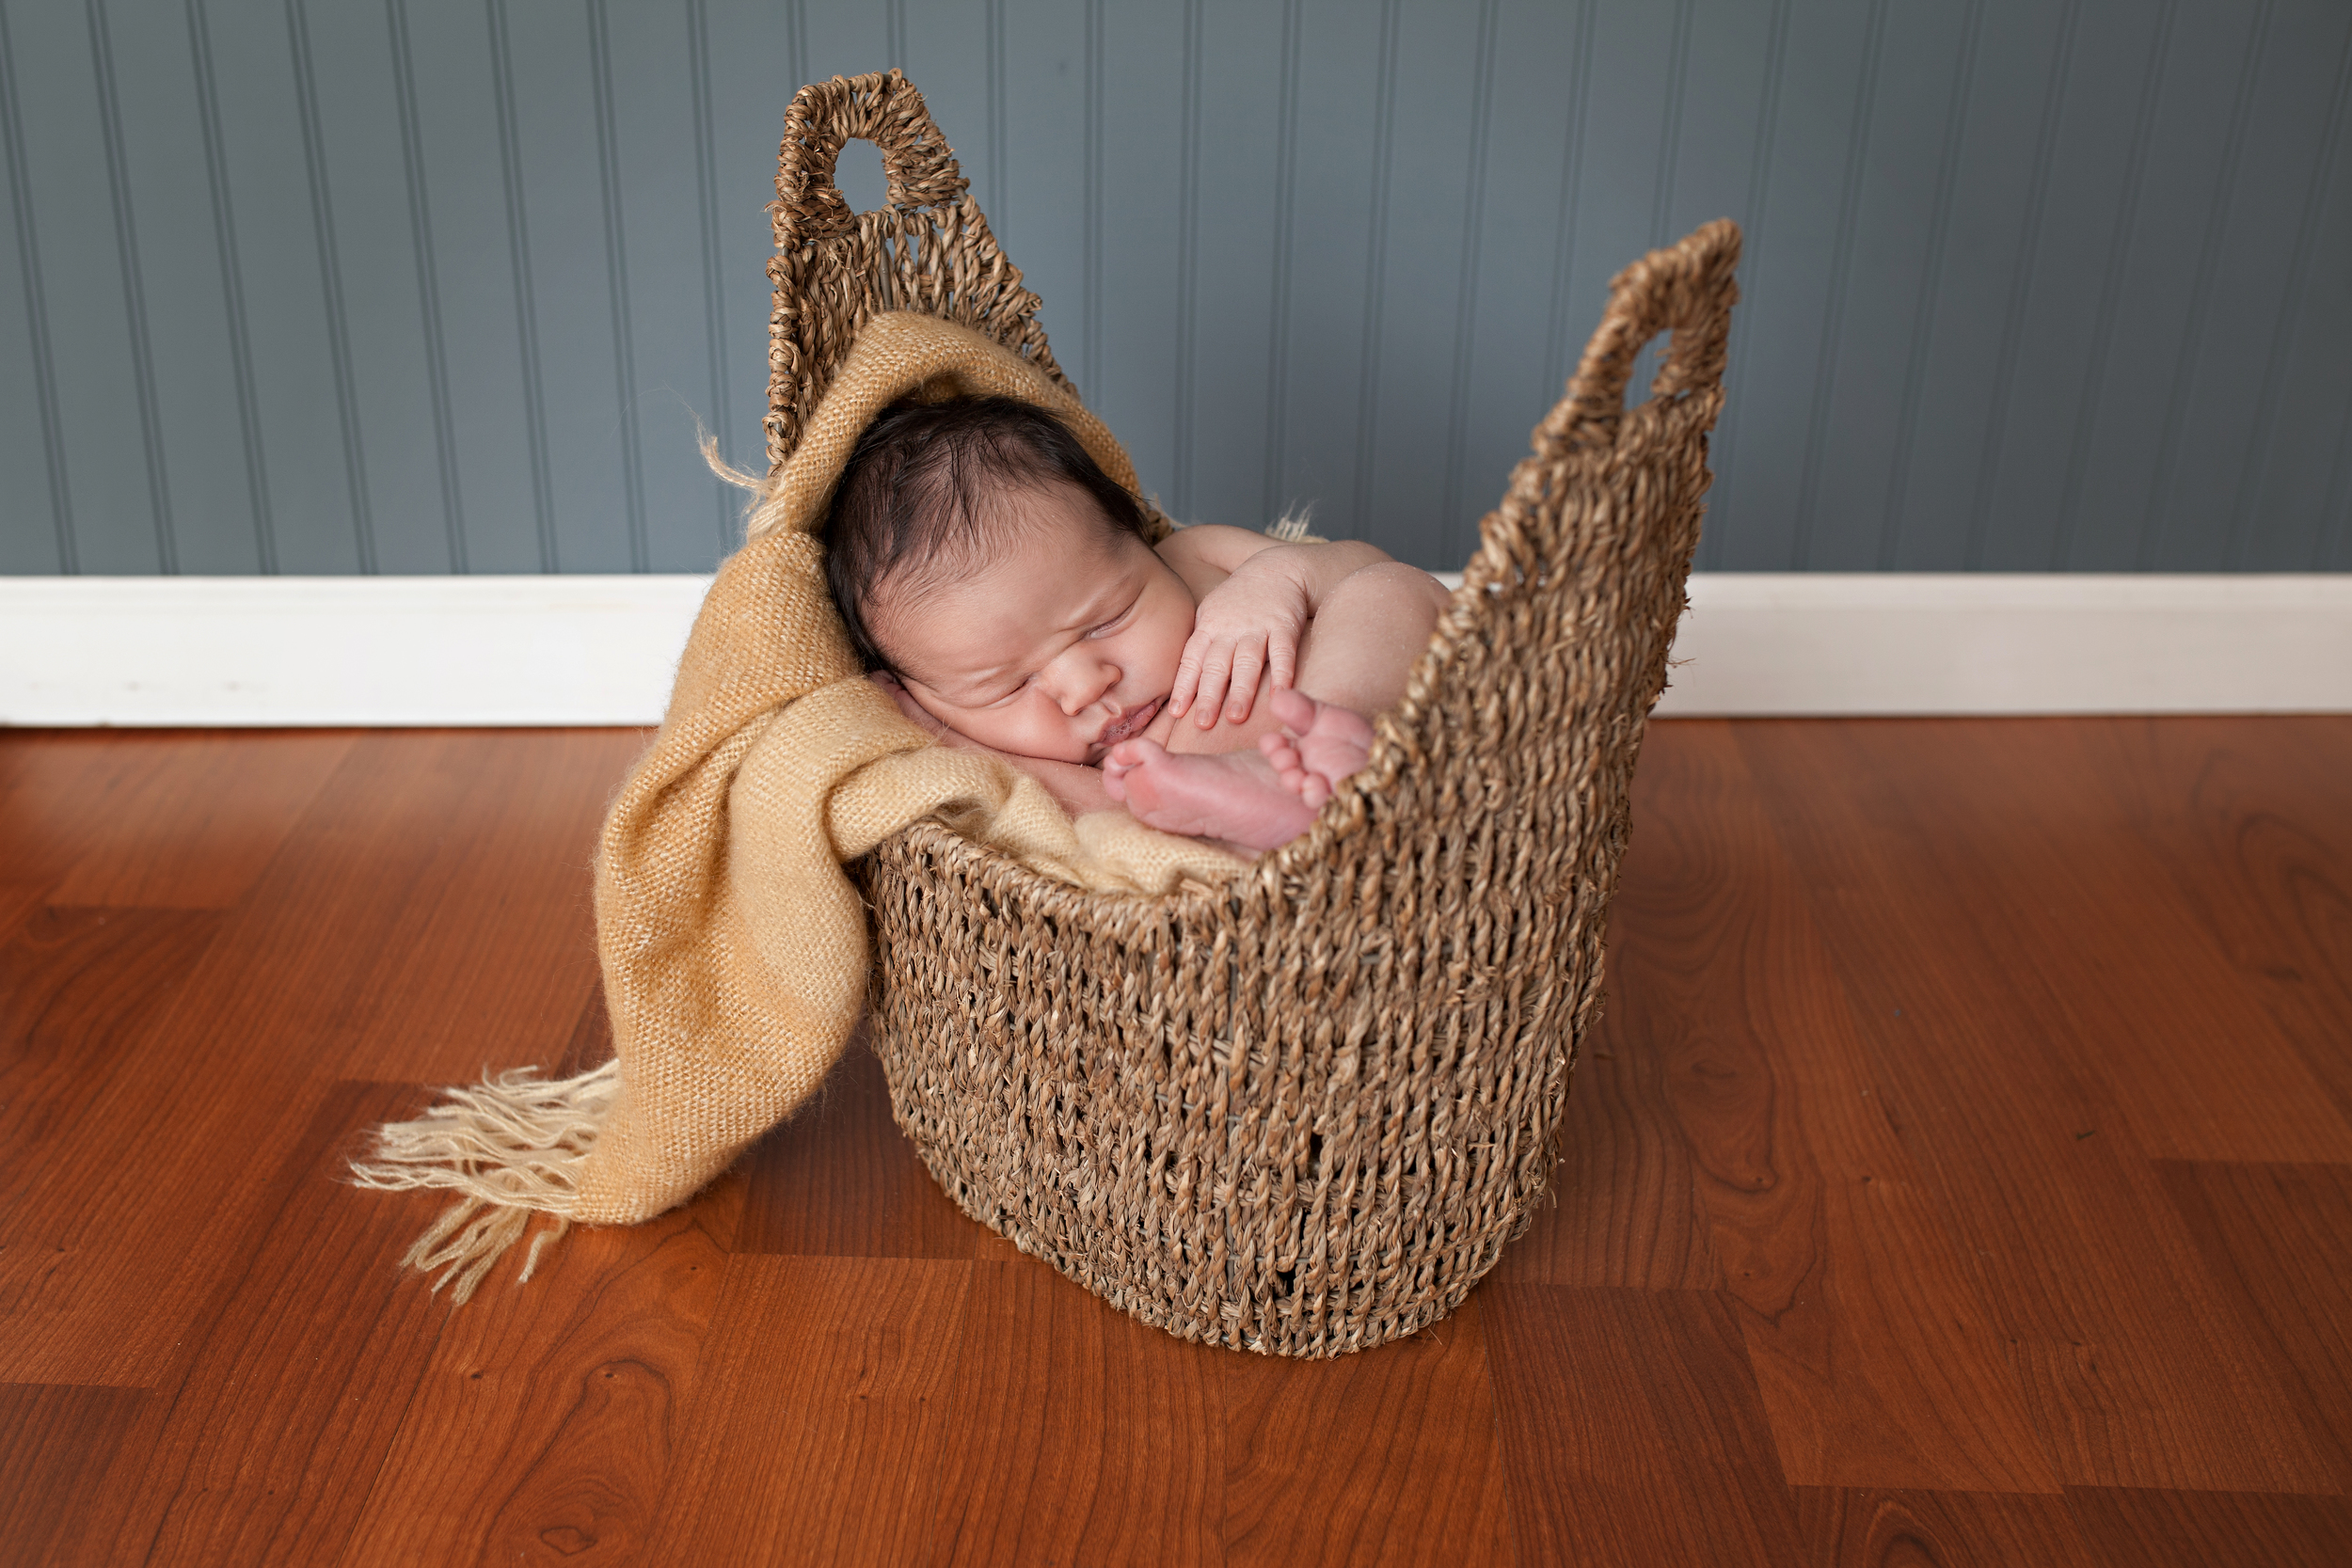 Columbus Newborn photographer, specializing in baby photography. Baby boy posed in basket